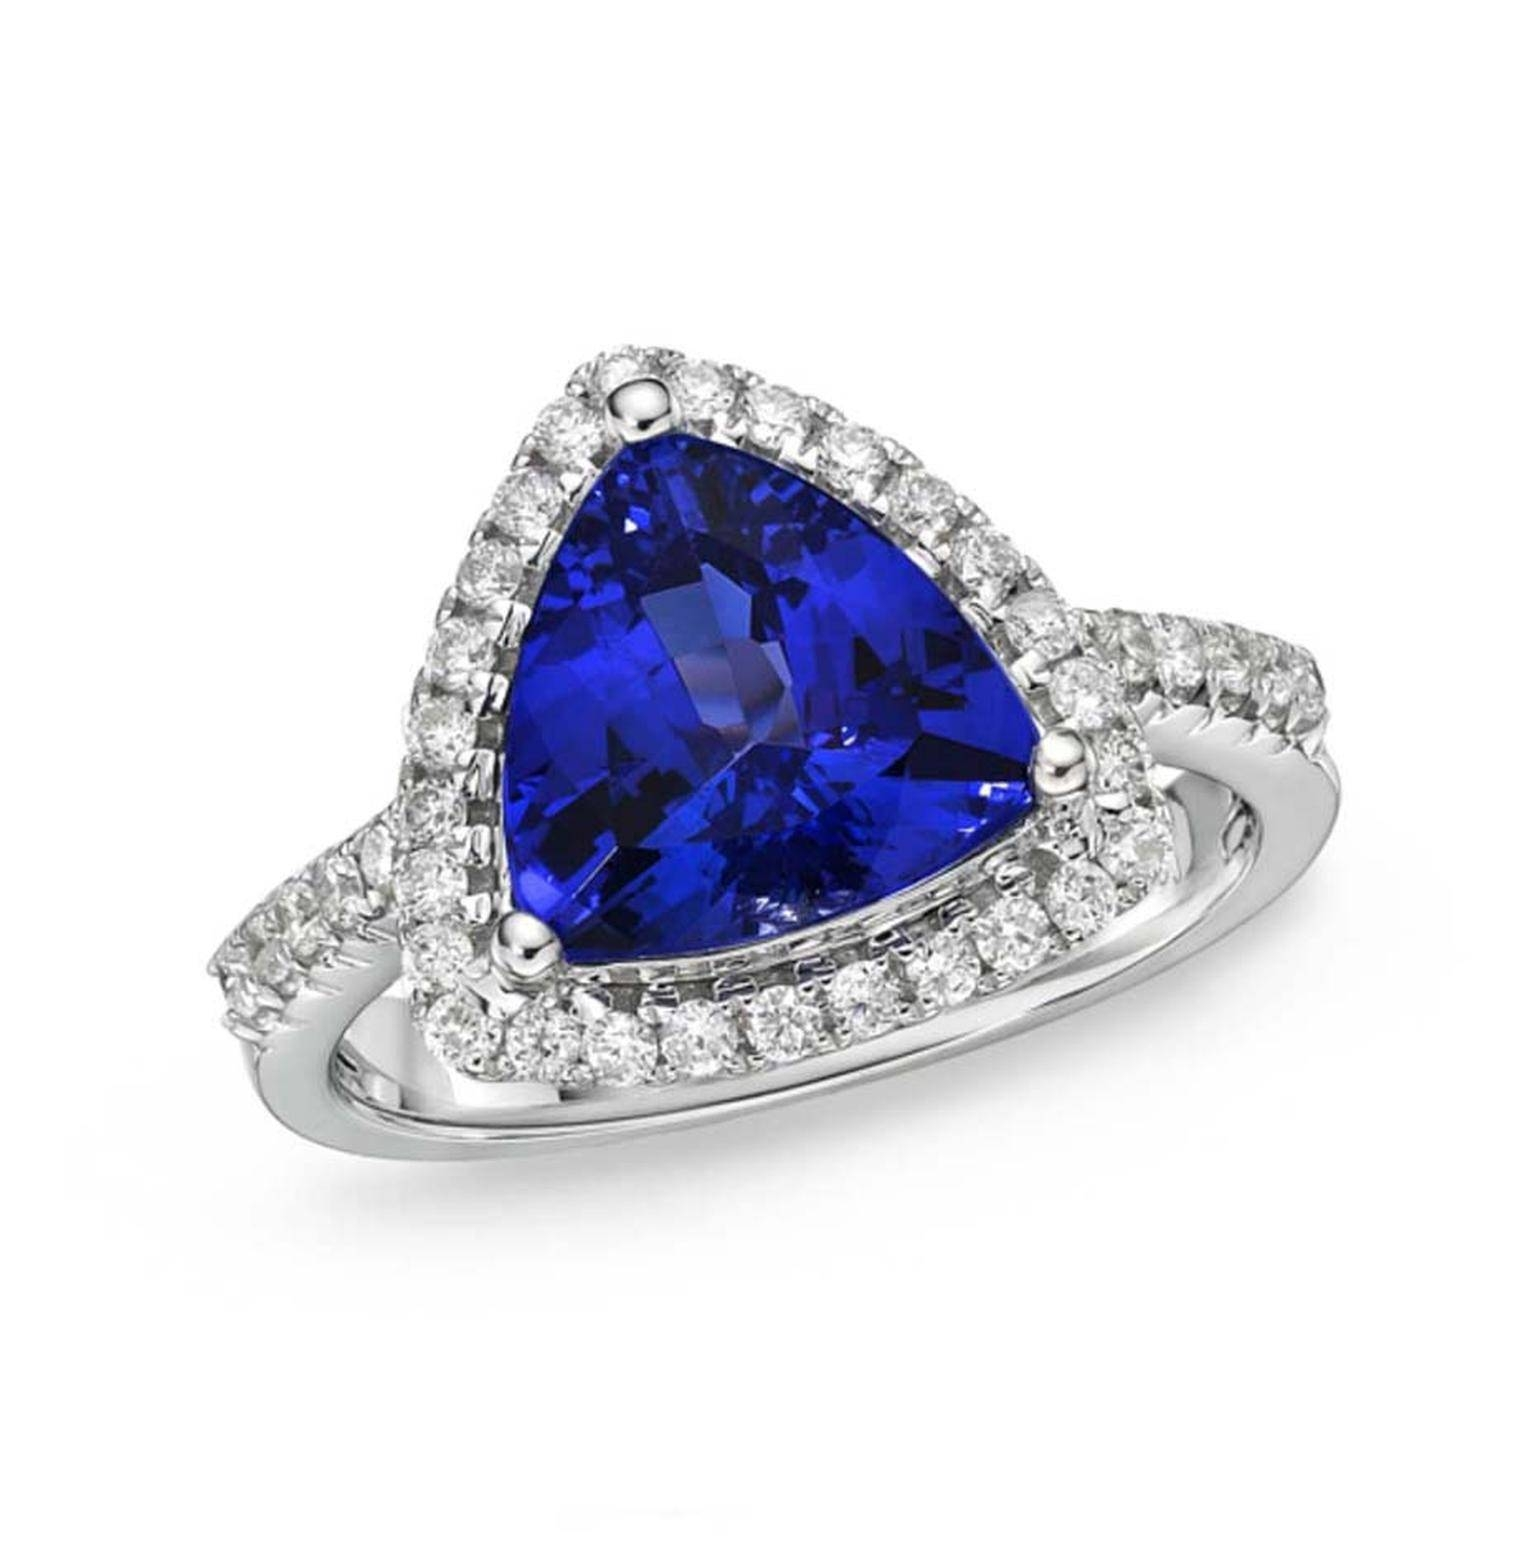 Trillion Cut Tanzanite Ring With Diamonds | Tanzaniteone | The Regarding Tanzanite Engagement (View 6 of 15)